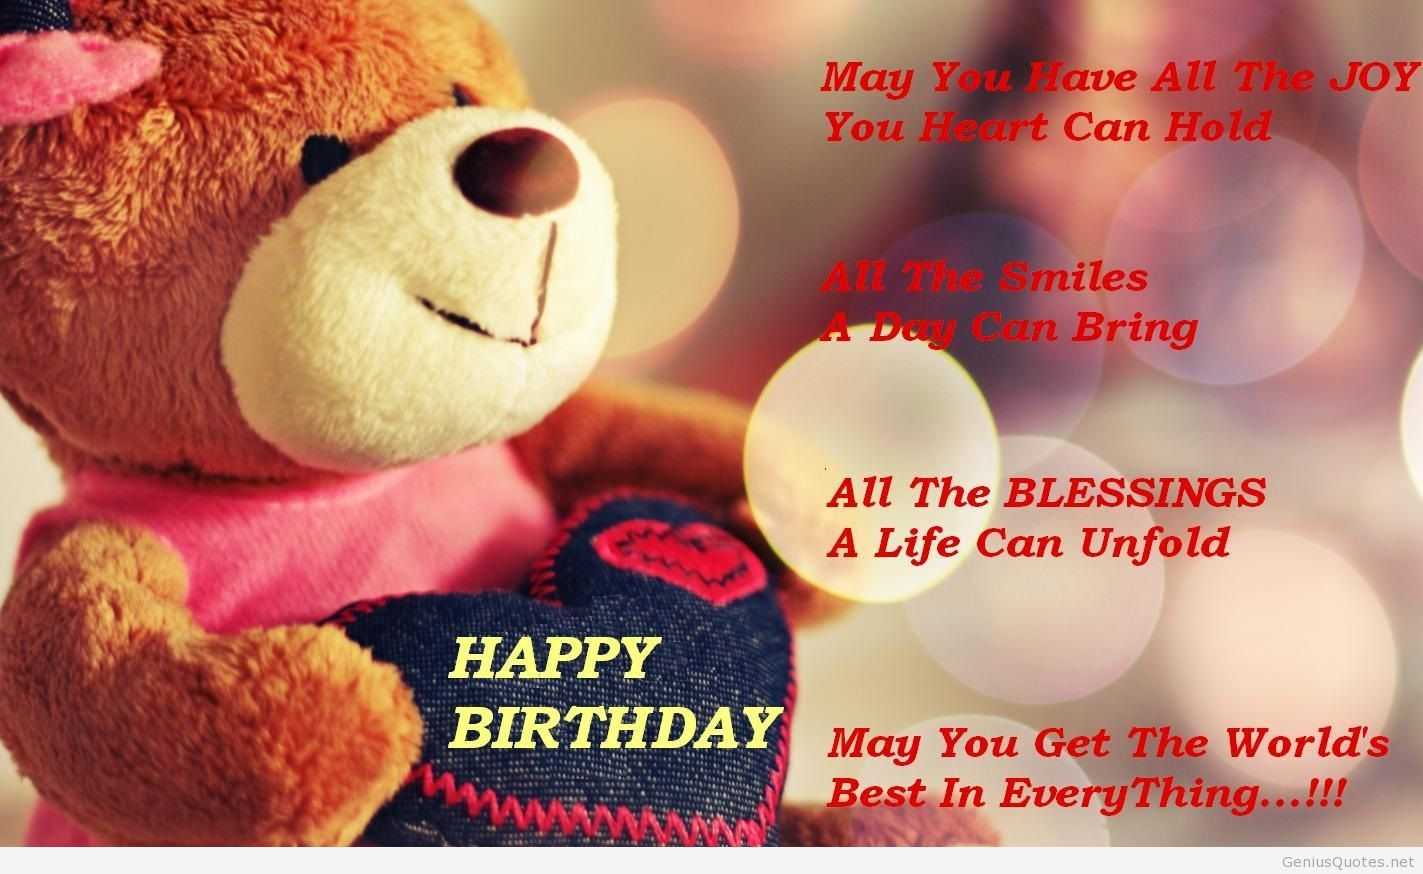 free birthday images with quotes ; Happy-Birthday-HD-wallpaper-quote-2014-image